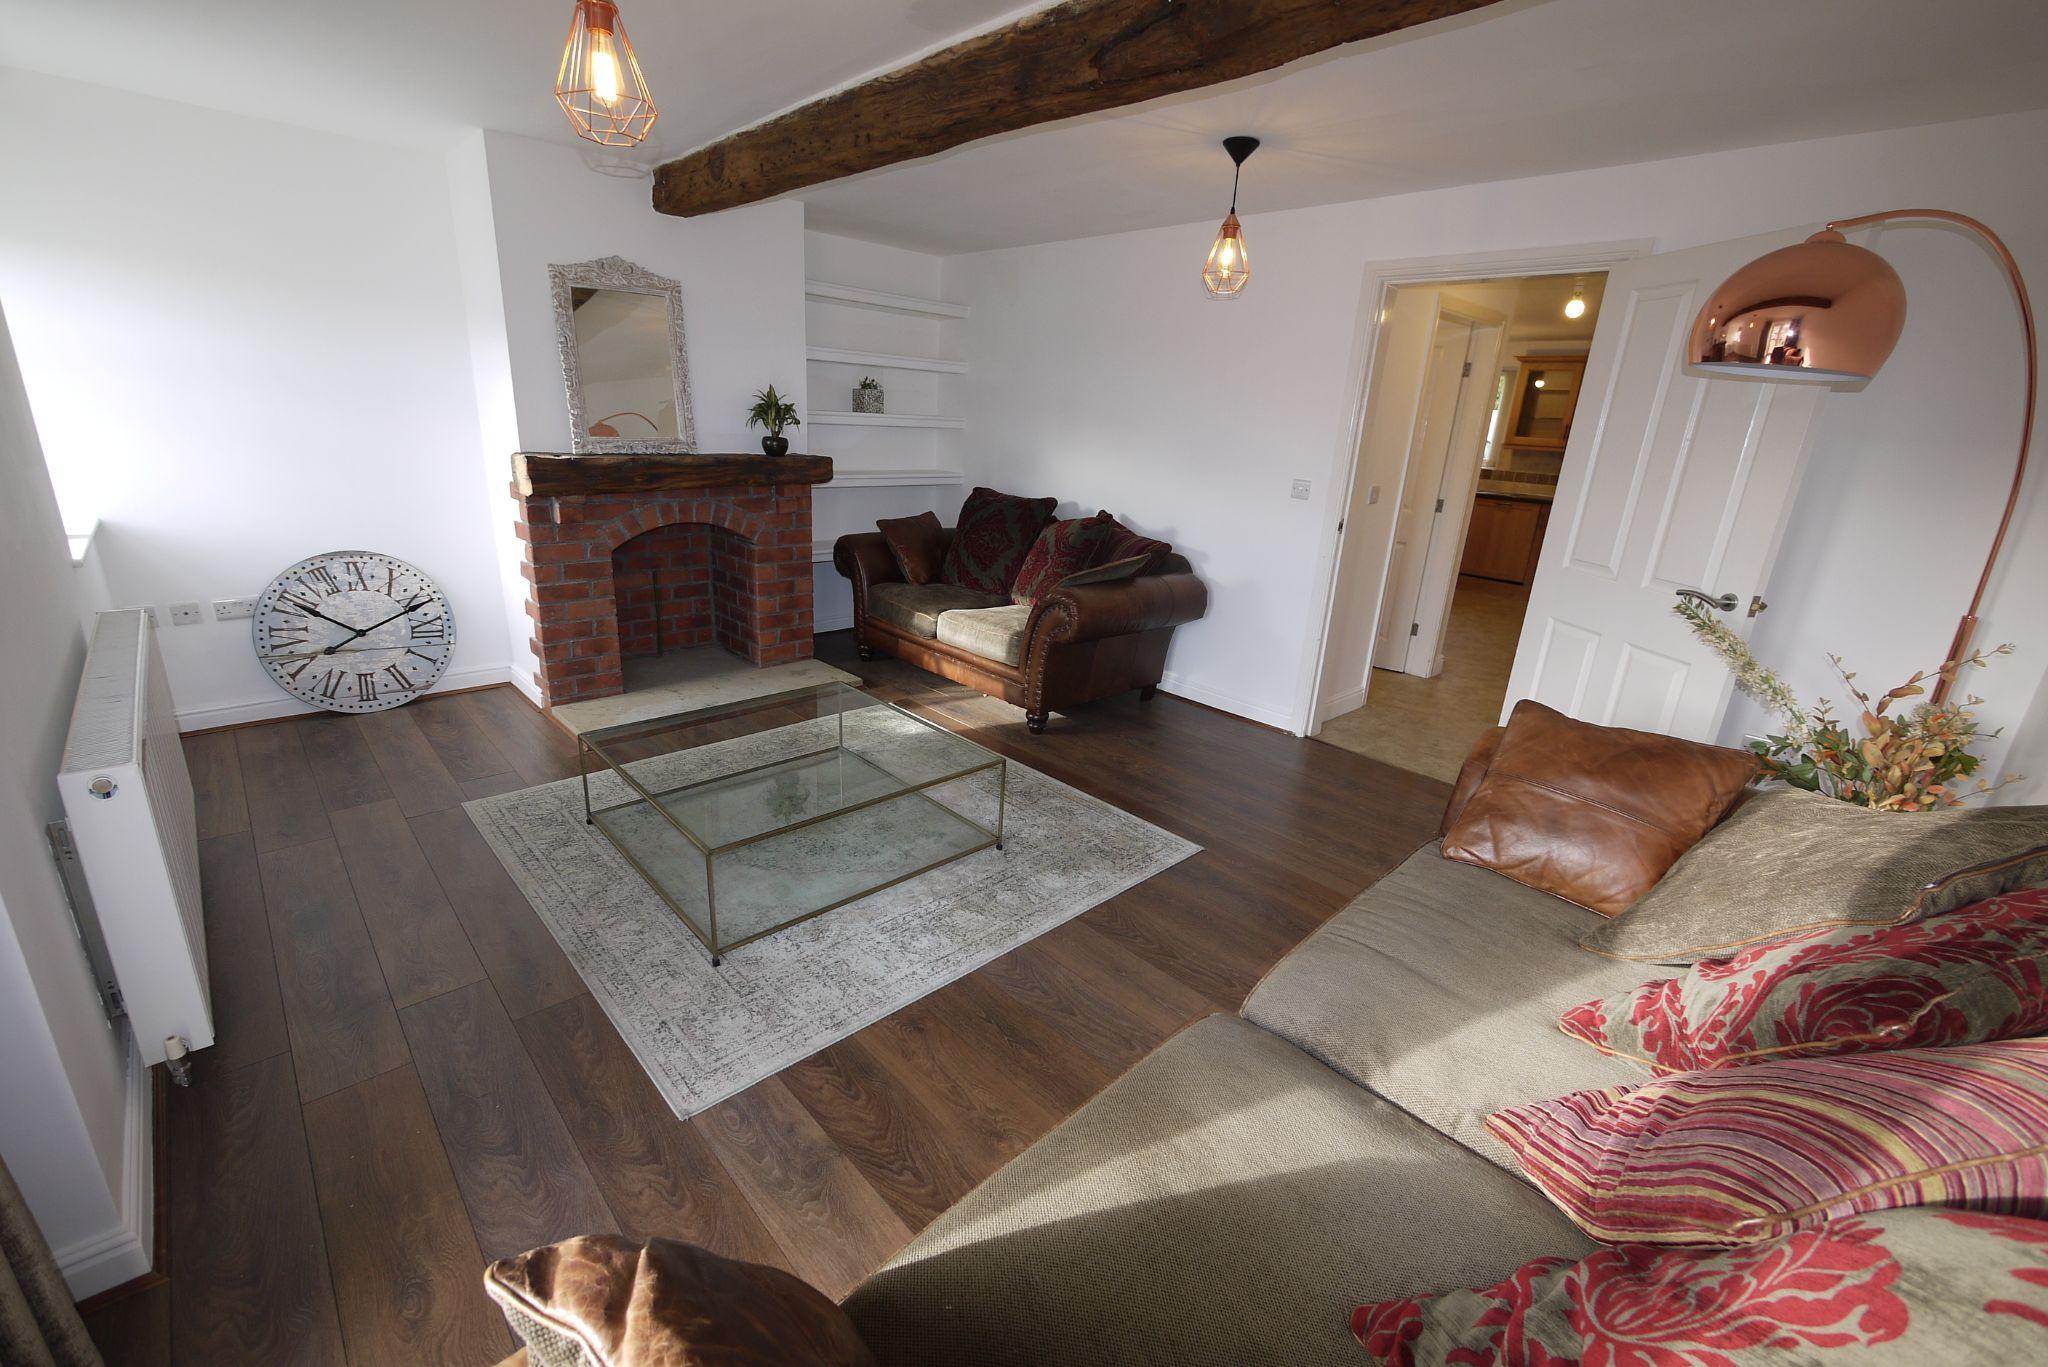 4 bedroom barn character property For Sale in Brighouse - Photograph 2.